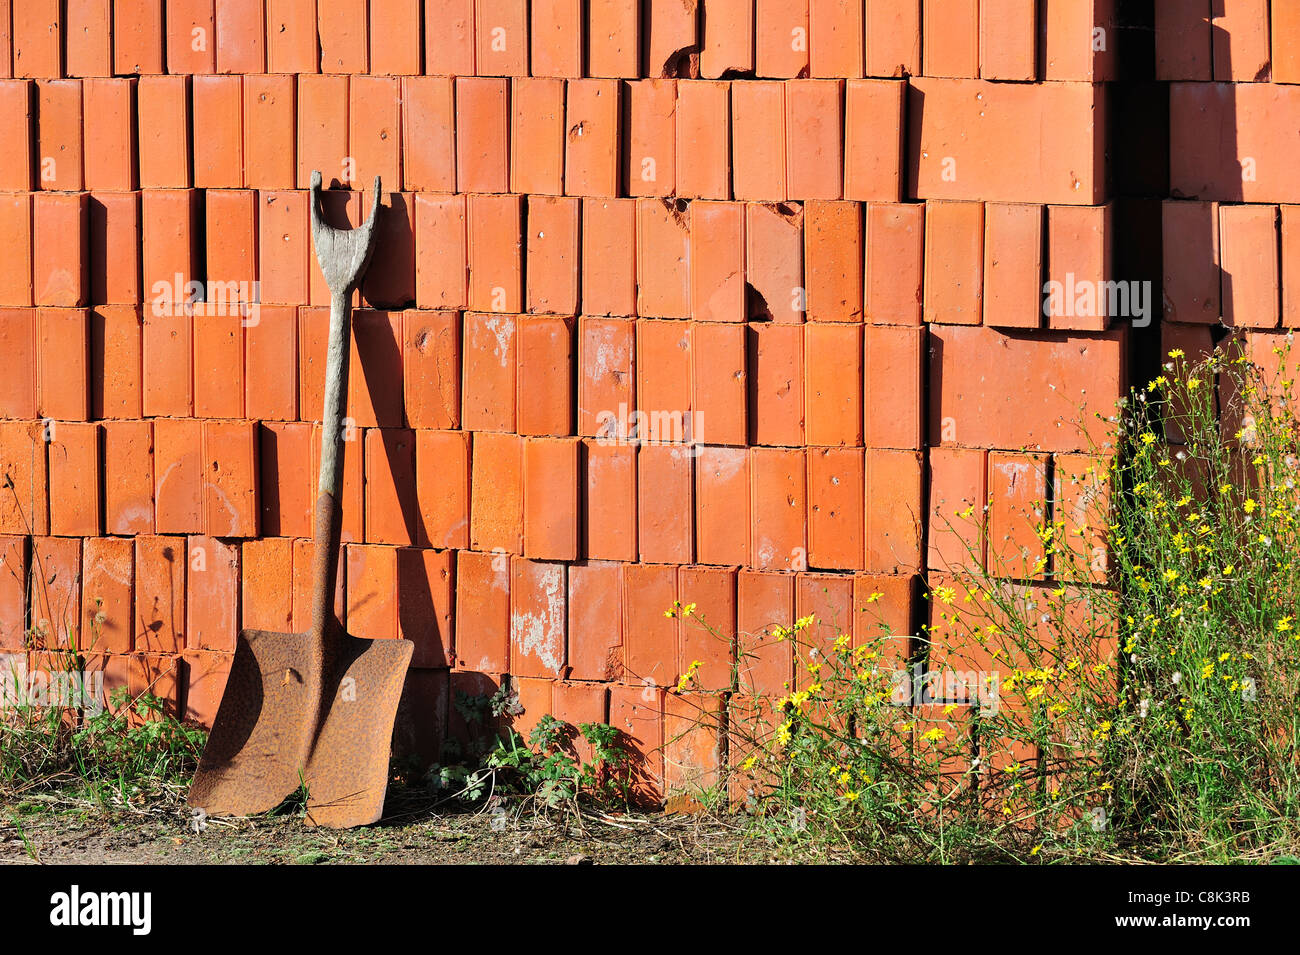 Shovel and pile of stacked red bricks as building material at brickworks, Boom, Belgium - Stock Image